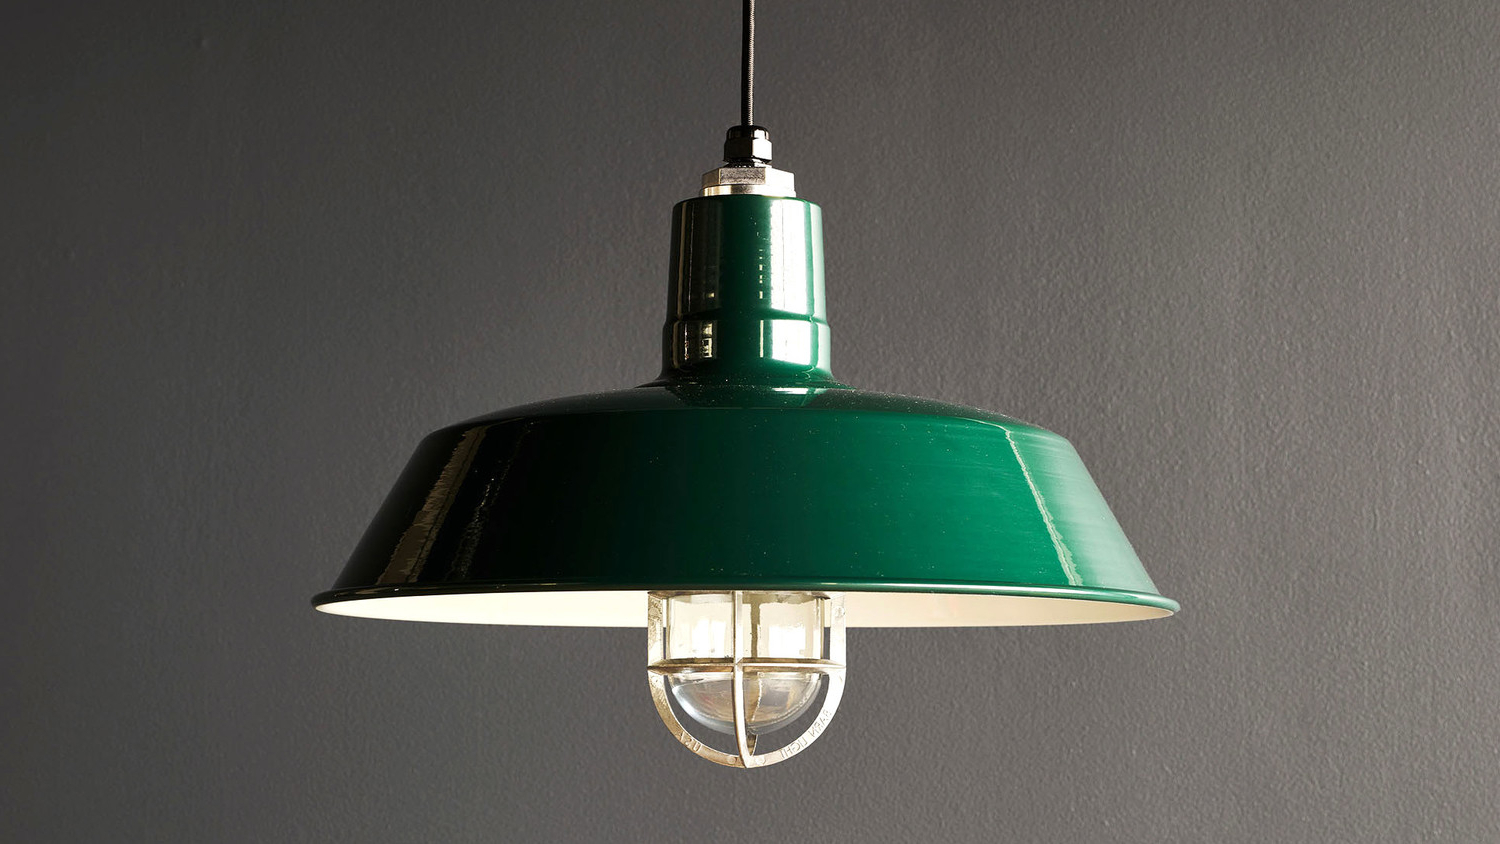 Amazing Deals On Scruggs 1 Light Geometric Pendant Finish With Regard To Well Known Scruggs 1 Light Geometric Pendants (View 9 of 25)